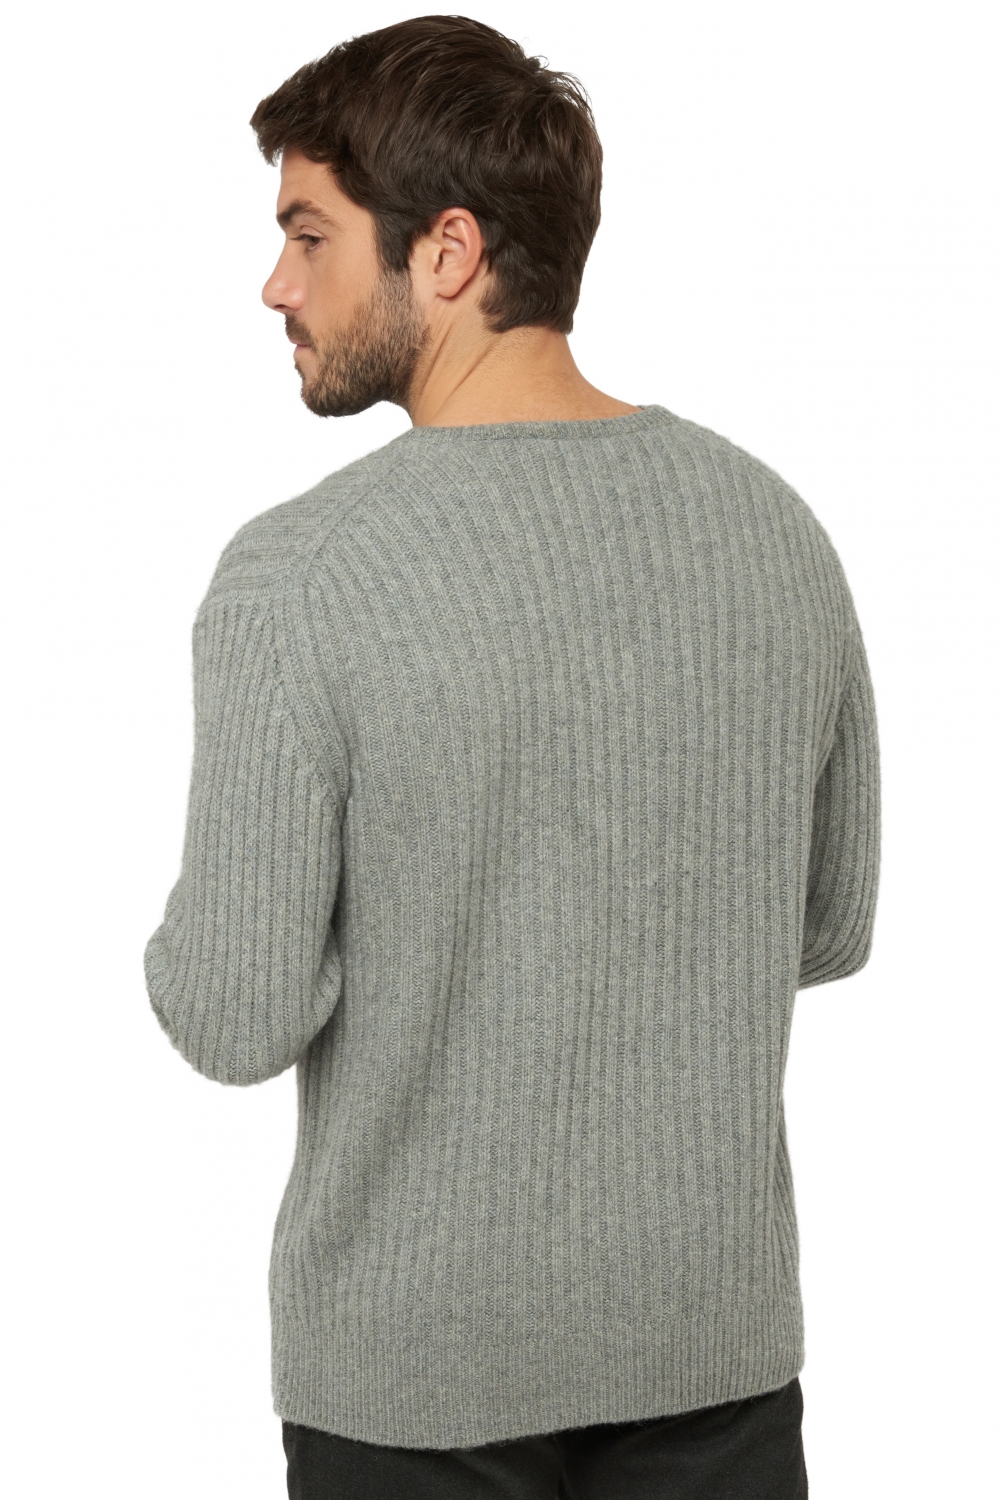 Yak men v necks maester silver l